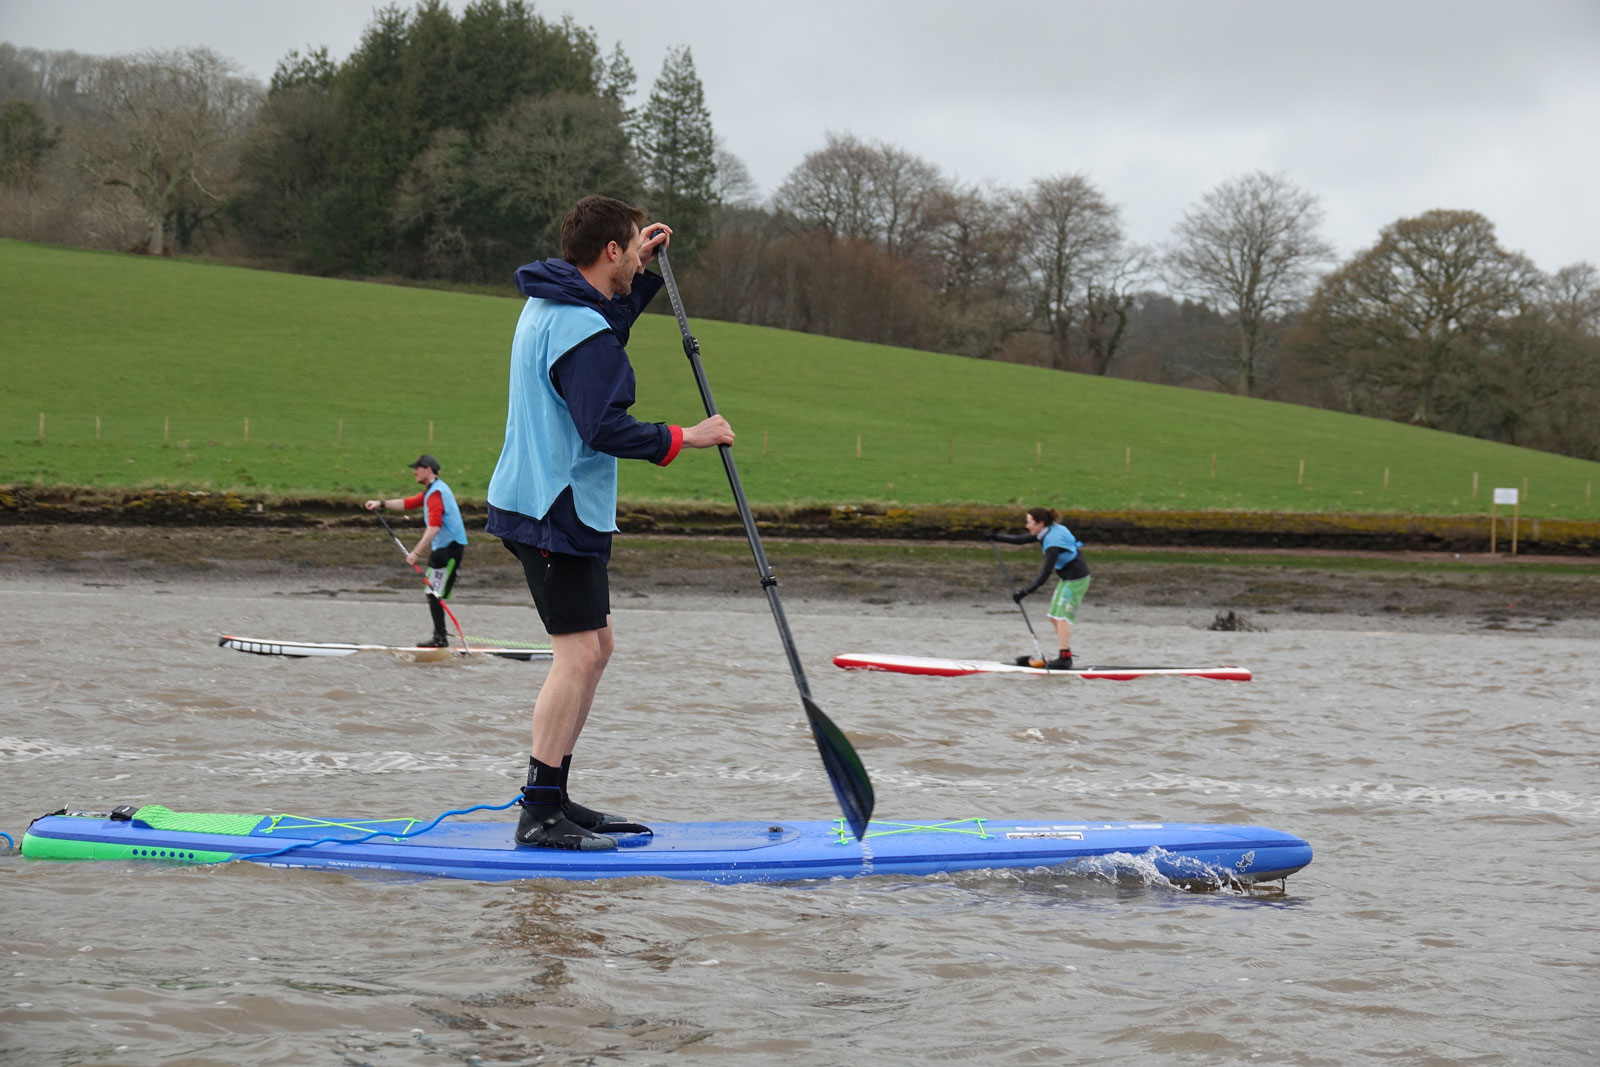 starboard-sup-Head-of-the-Dart-SUP-Challenge-2018-8